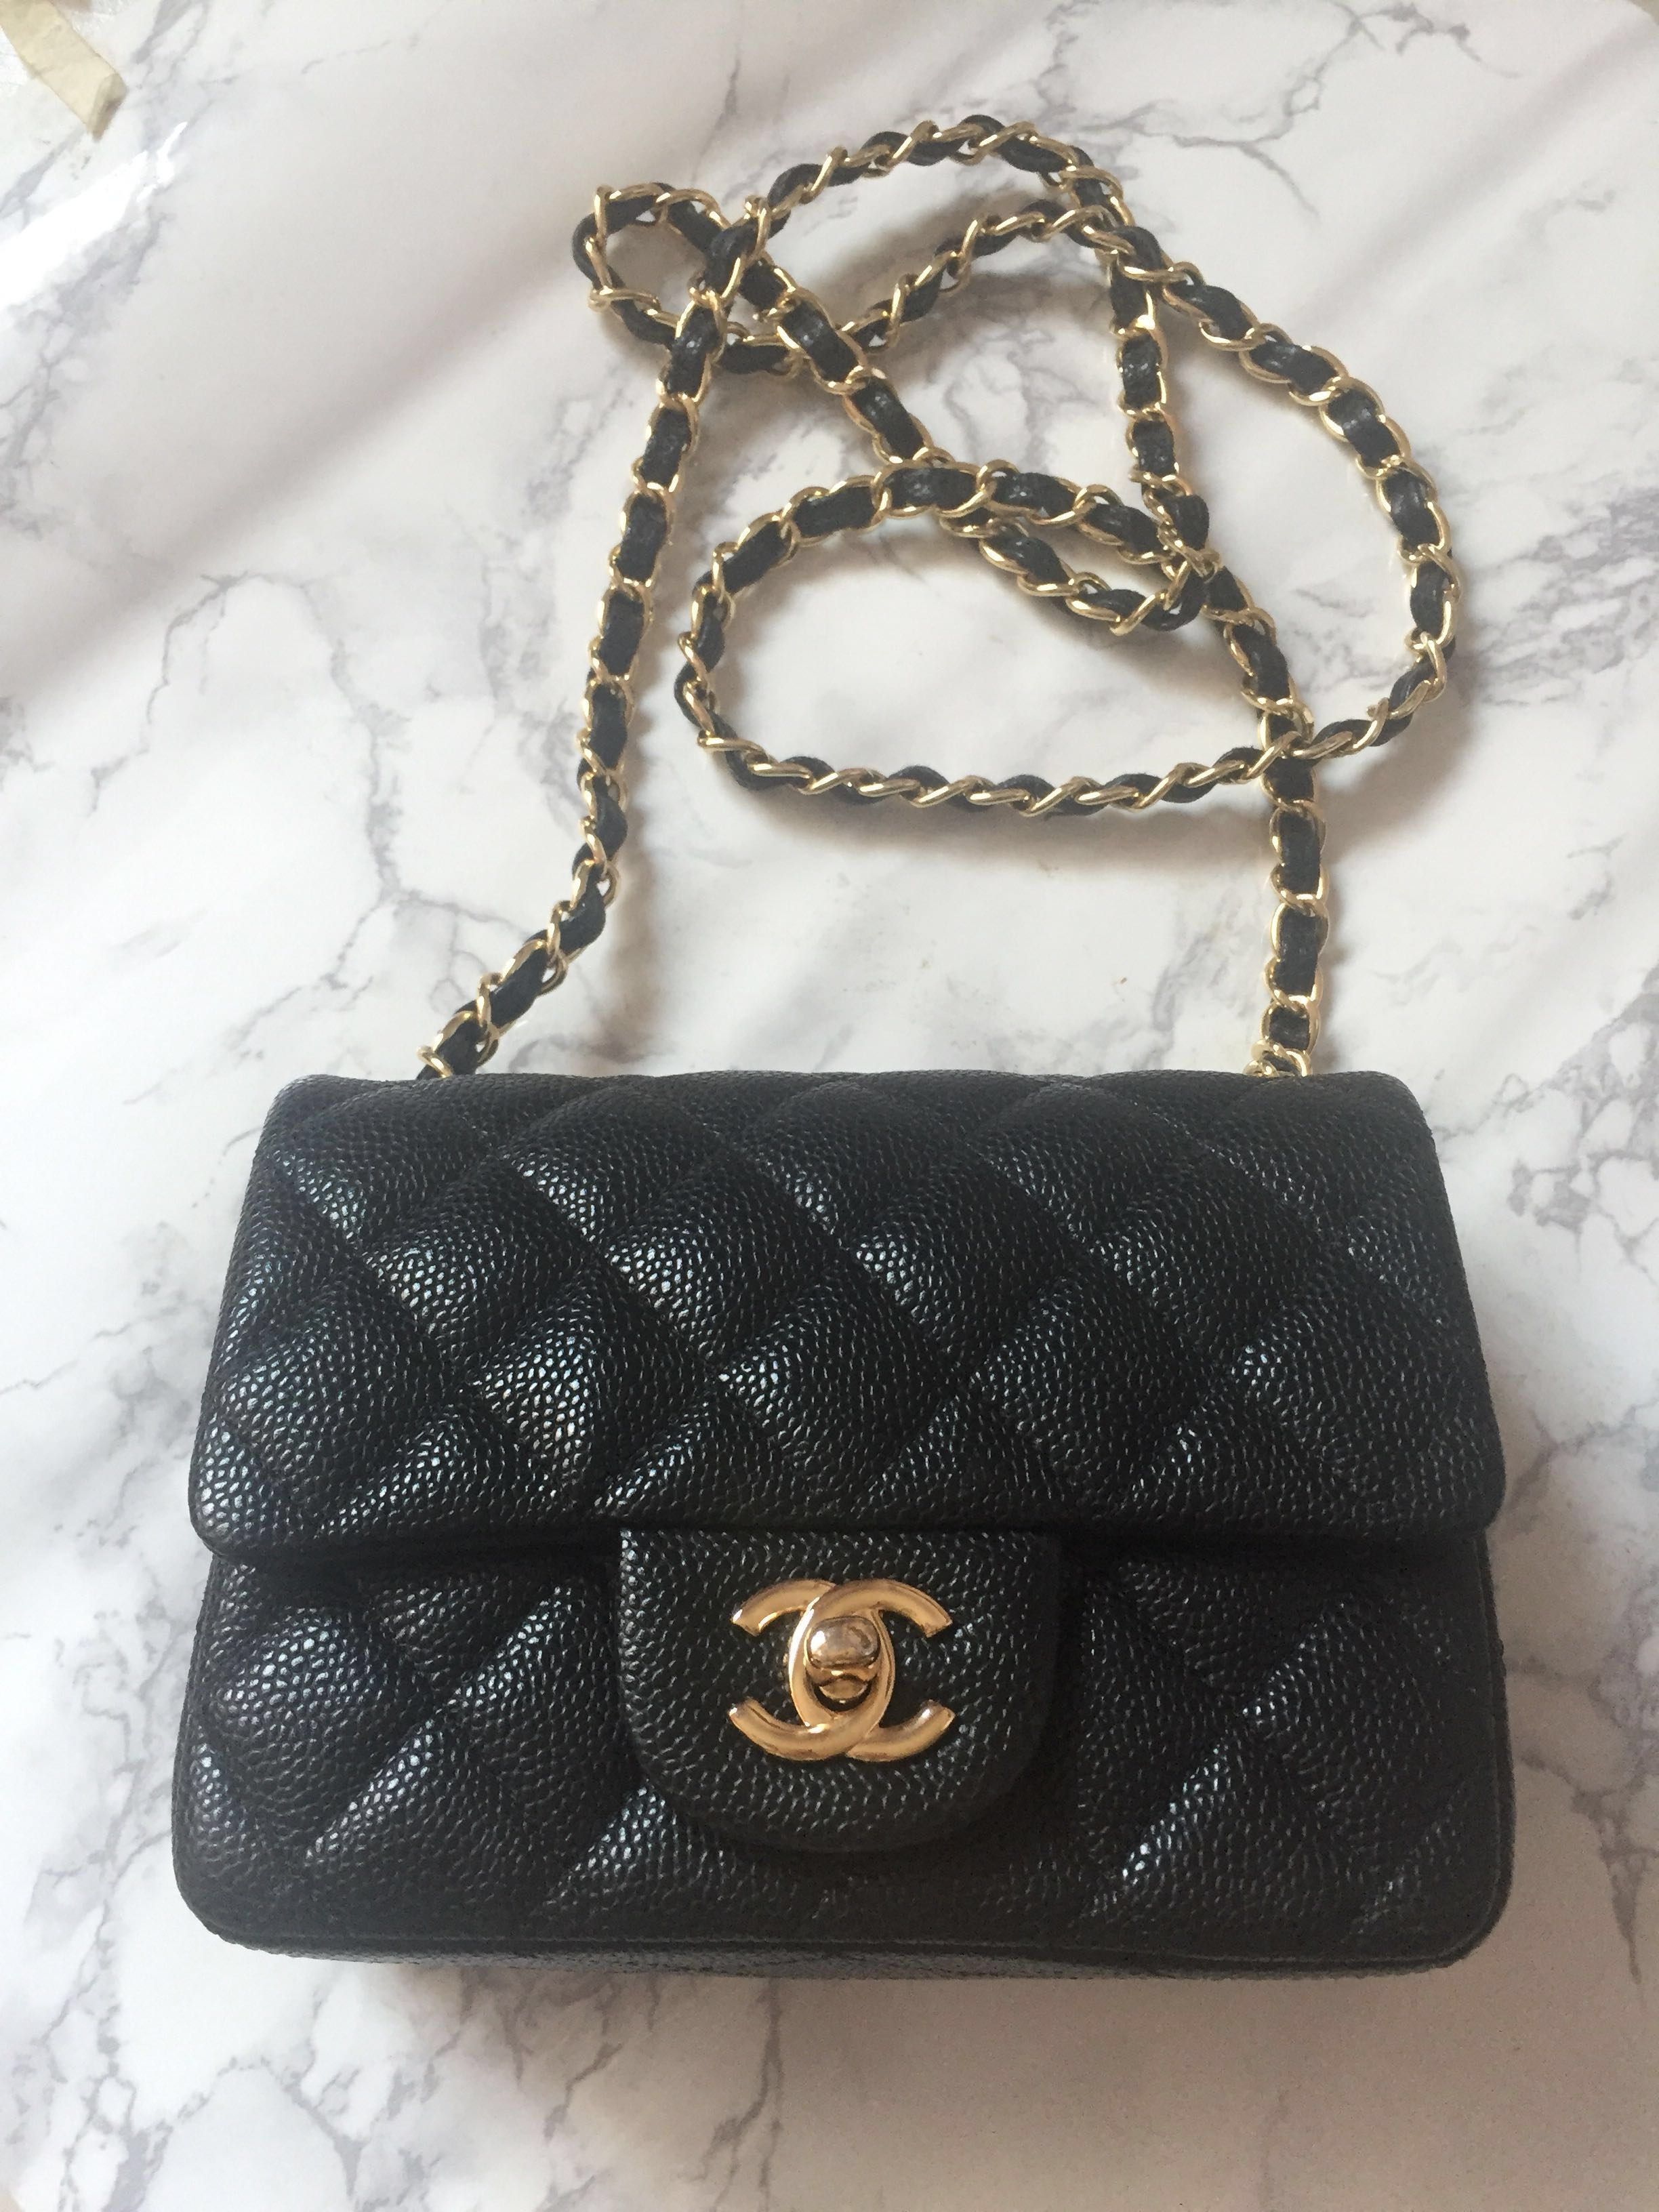 15c5b5570649 (Item not available) Chanel Mini Square Classic Flap Bag, Luxury, Bags &  Wallets, Sling Bags on Carousell